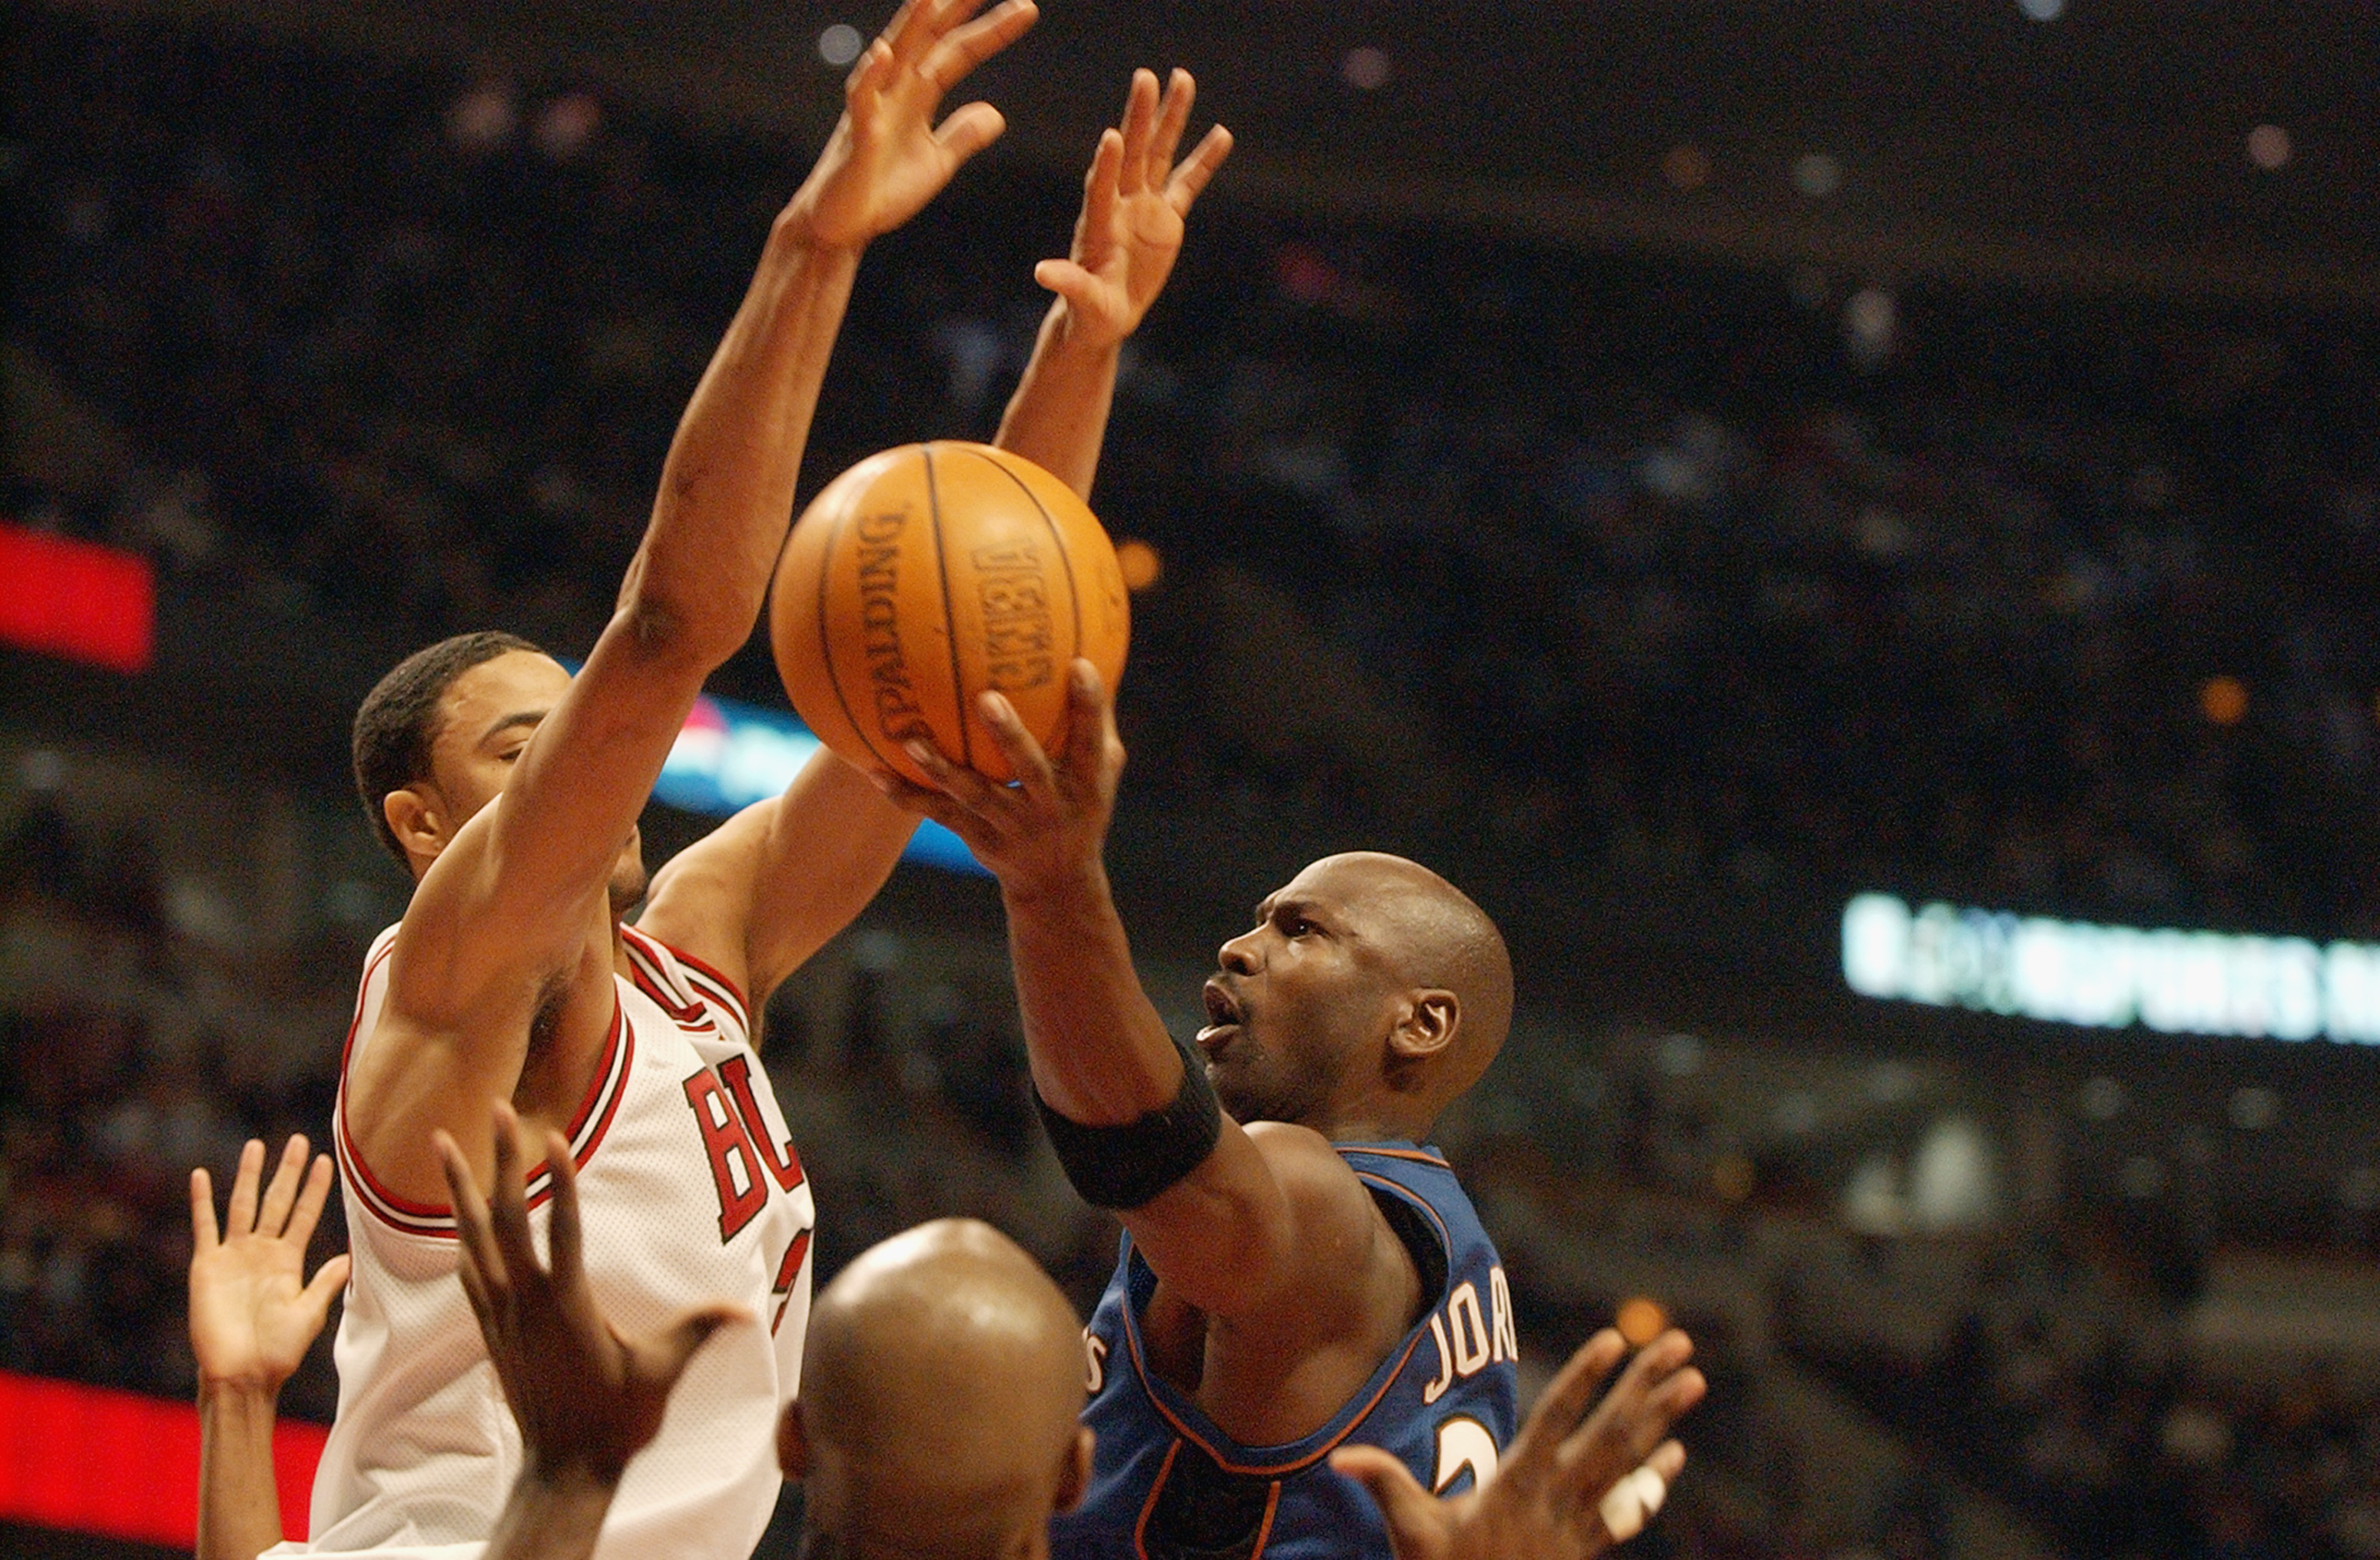 CHICAGO - JANUARY 24:  Michael Jordan #23 of the Washington Wizards shoots during Jordan's last appearance against his old team the Chicago Bulls at the United Center on January 24, 2003 in Chicago, Illinois.  The Bulls won 104-97.  NOTE TO USER: User exp